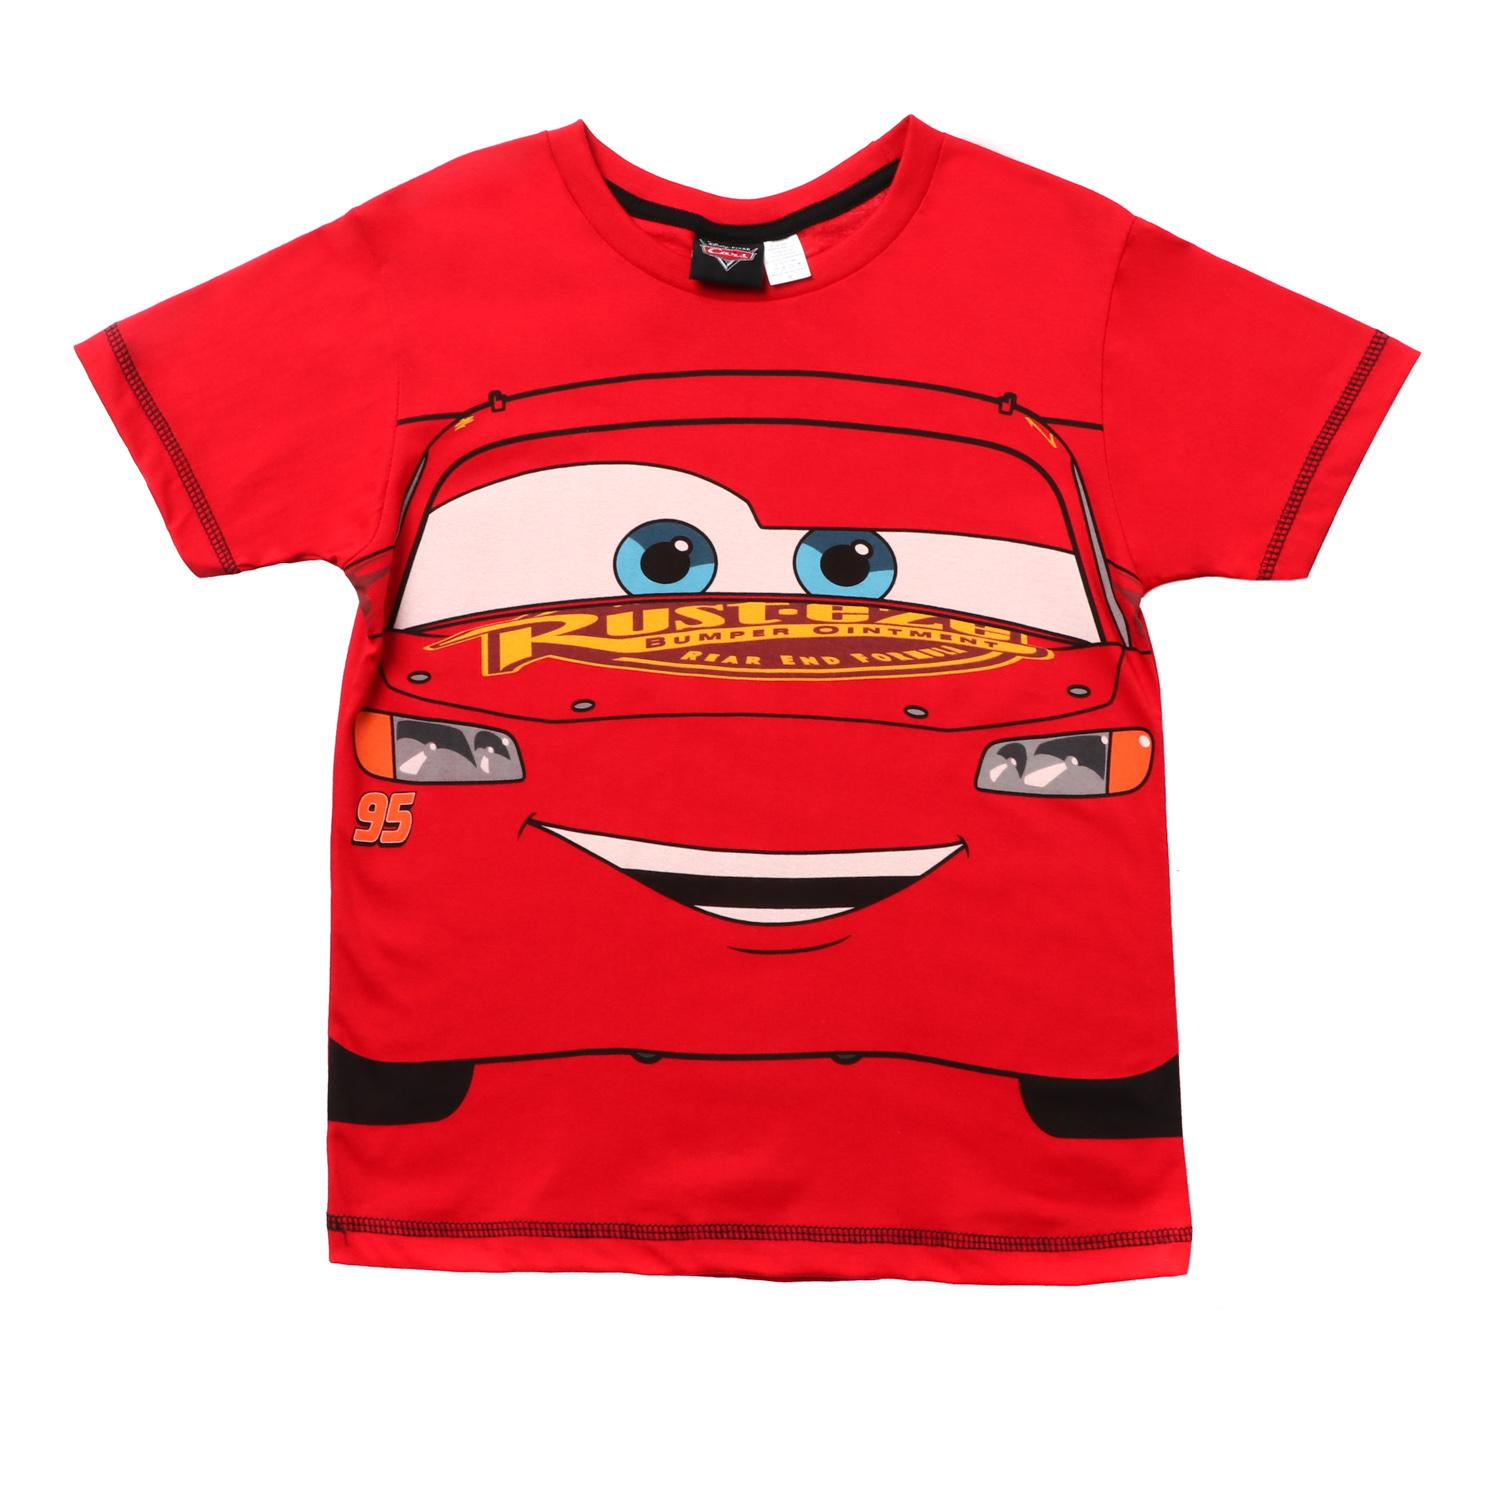 b2df883147d8b Disney Cars Philippines: Disney Cars price list - Toys, Shirts ...